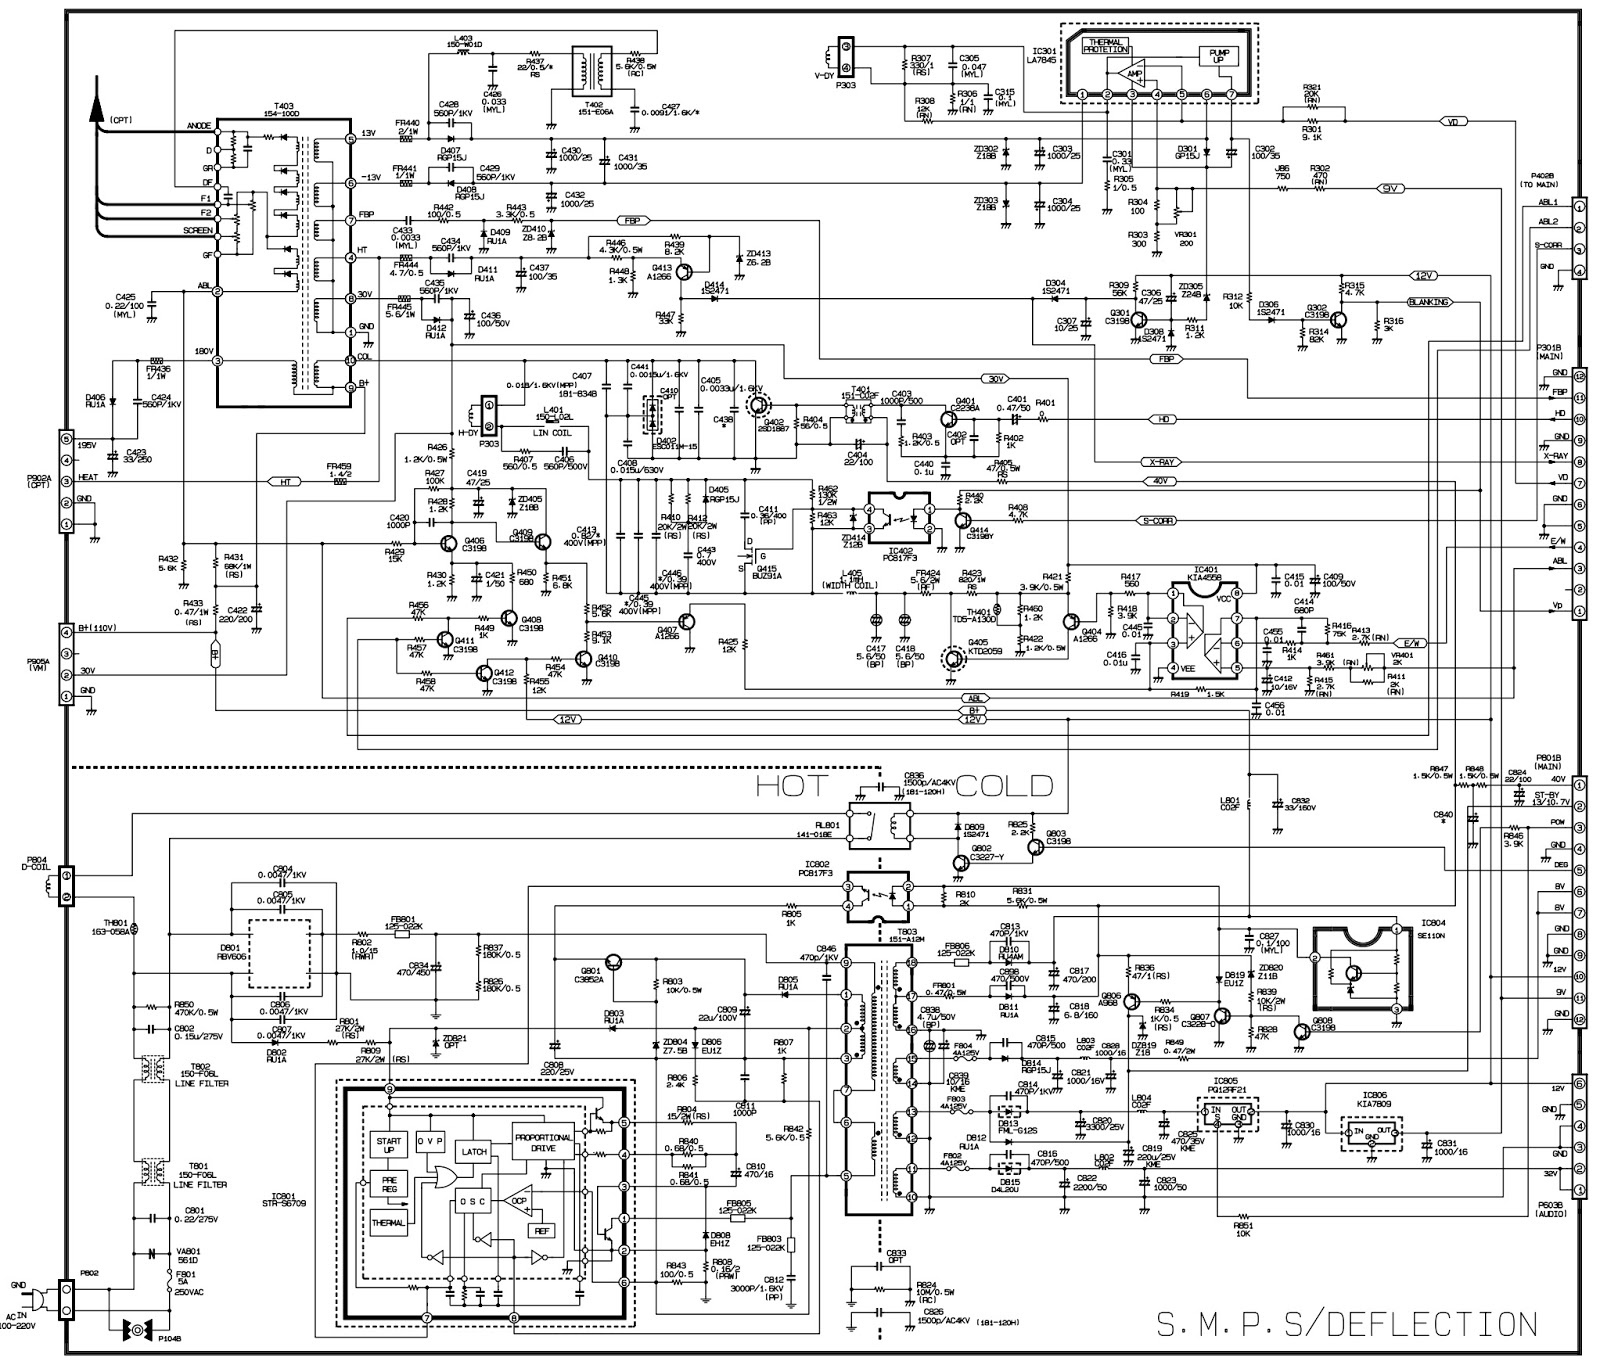 medium resolution of wp32a30 lg 32 inch crt tv circuit diagram